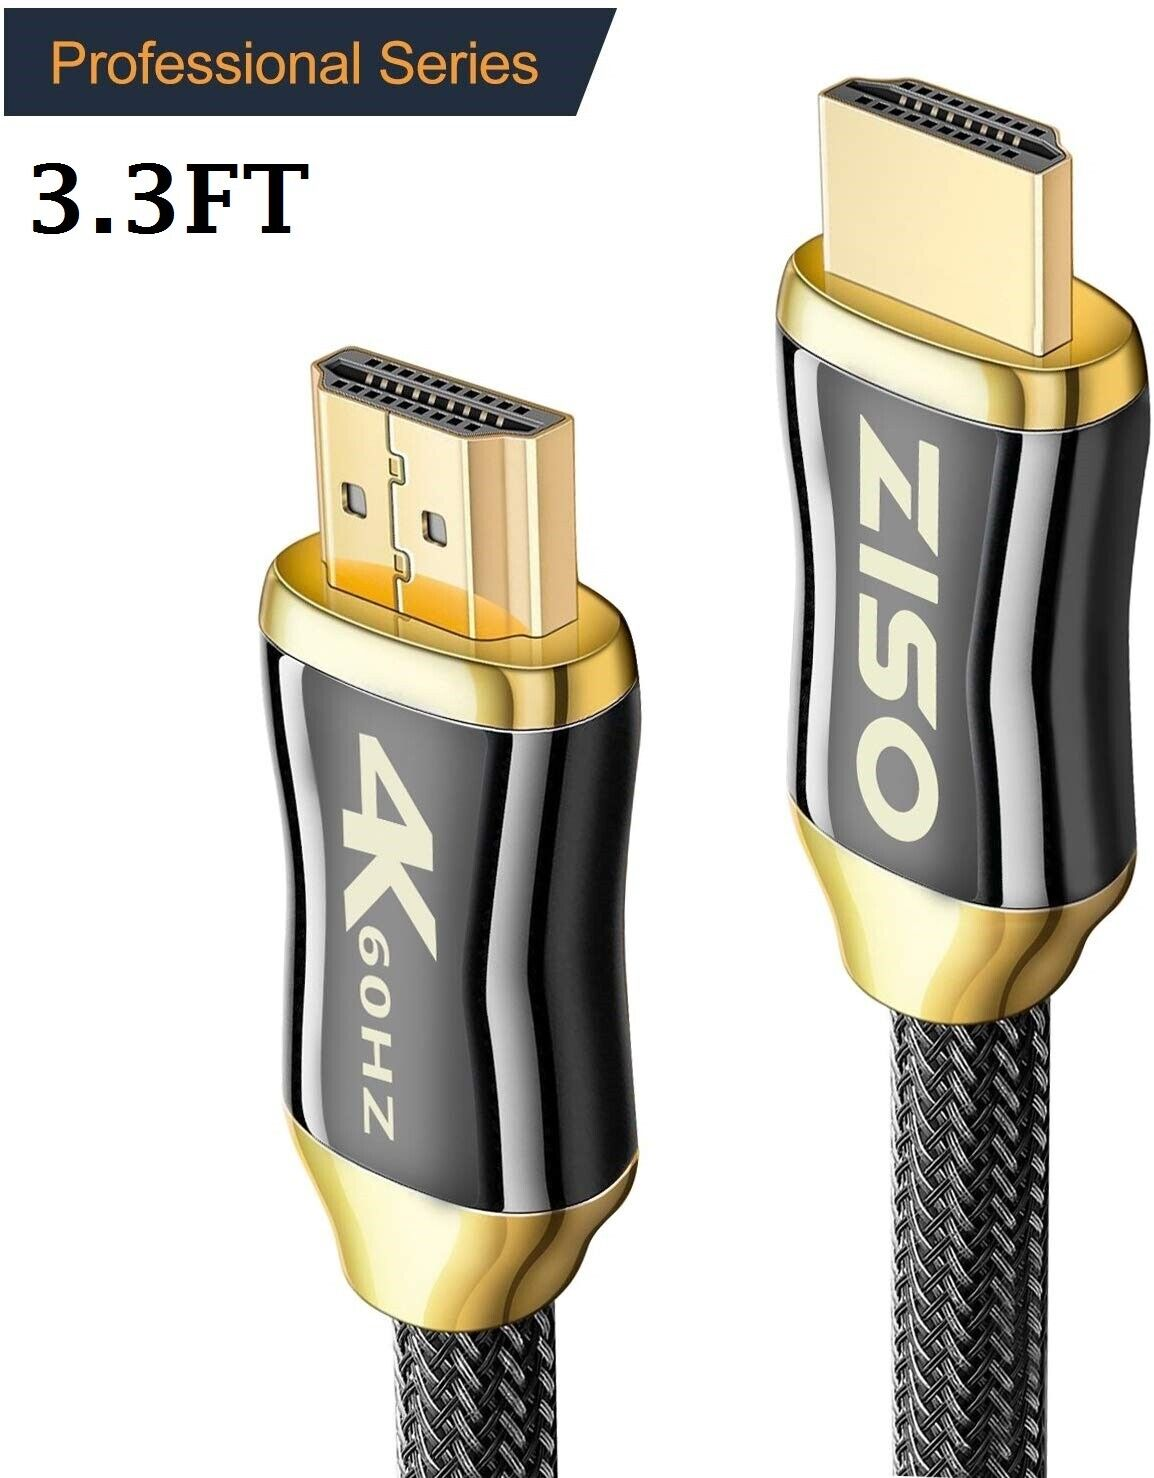 4K High Speed HDMI 2.0 Cable 2160P FullHD UHD/Ultra HD HDR HDCP 2.2 (3.3 FT) Consumer Electronics